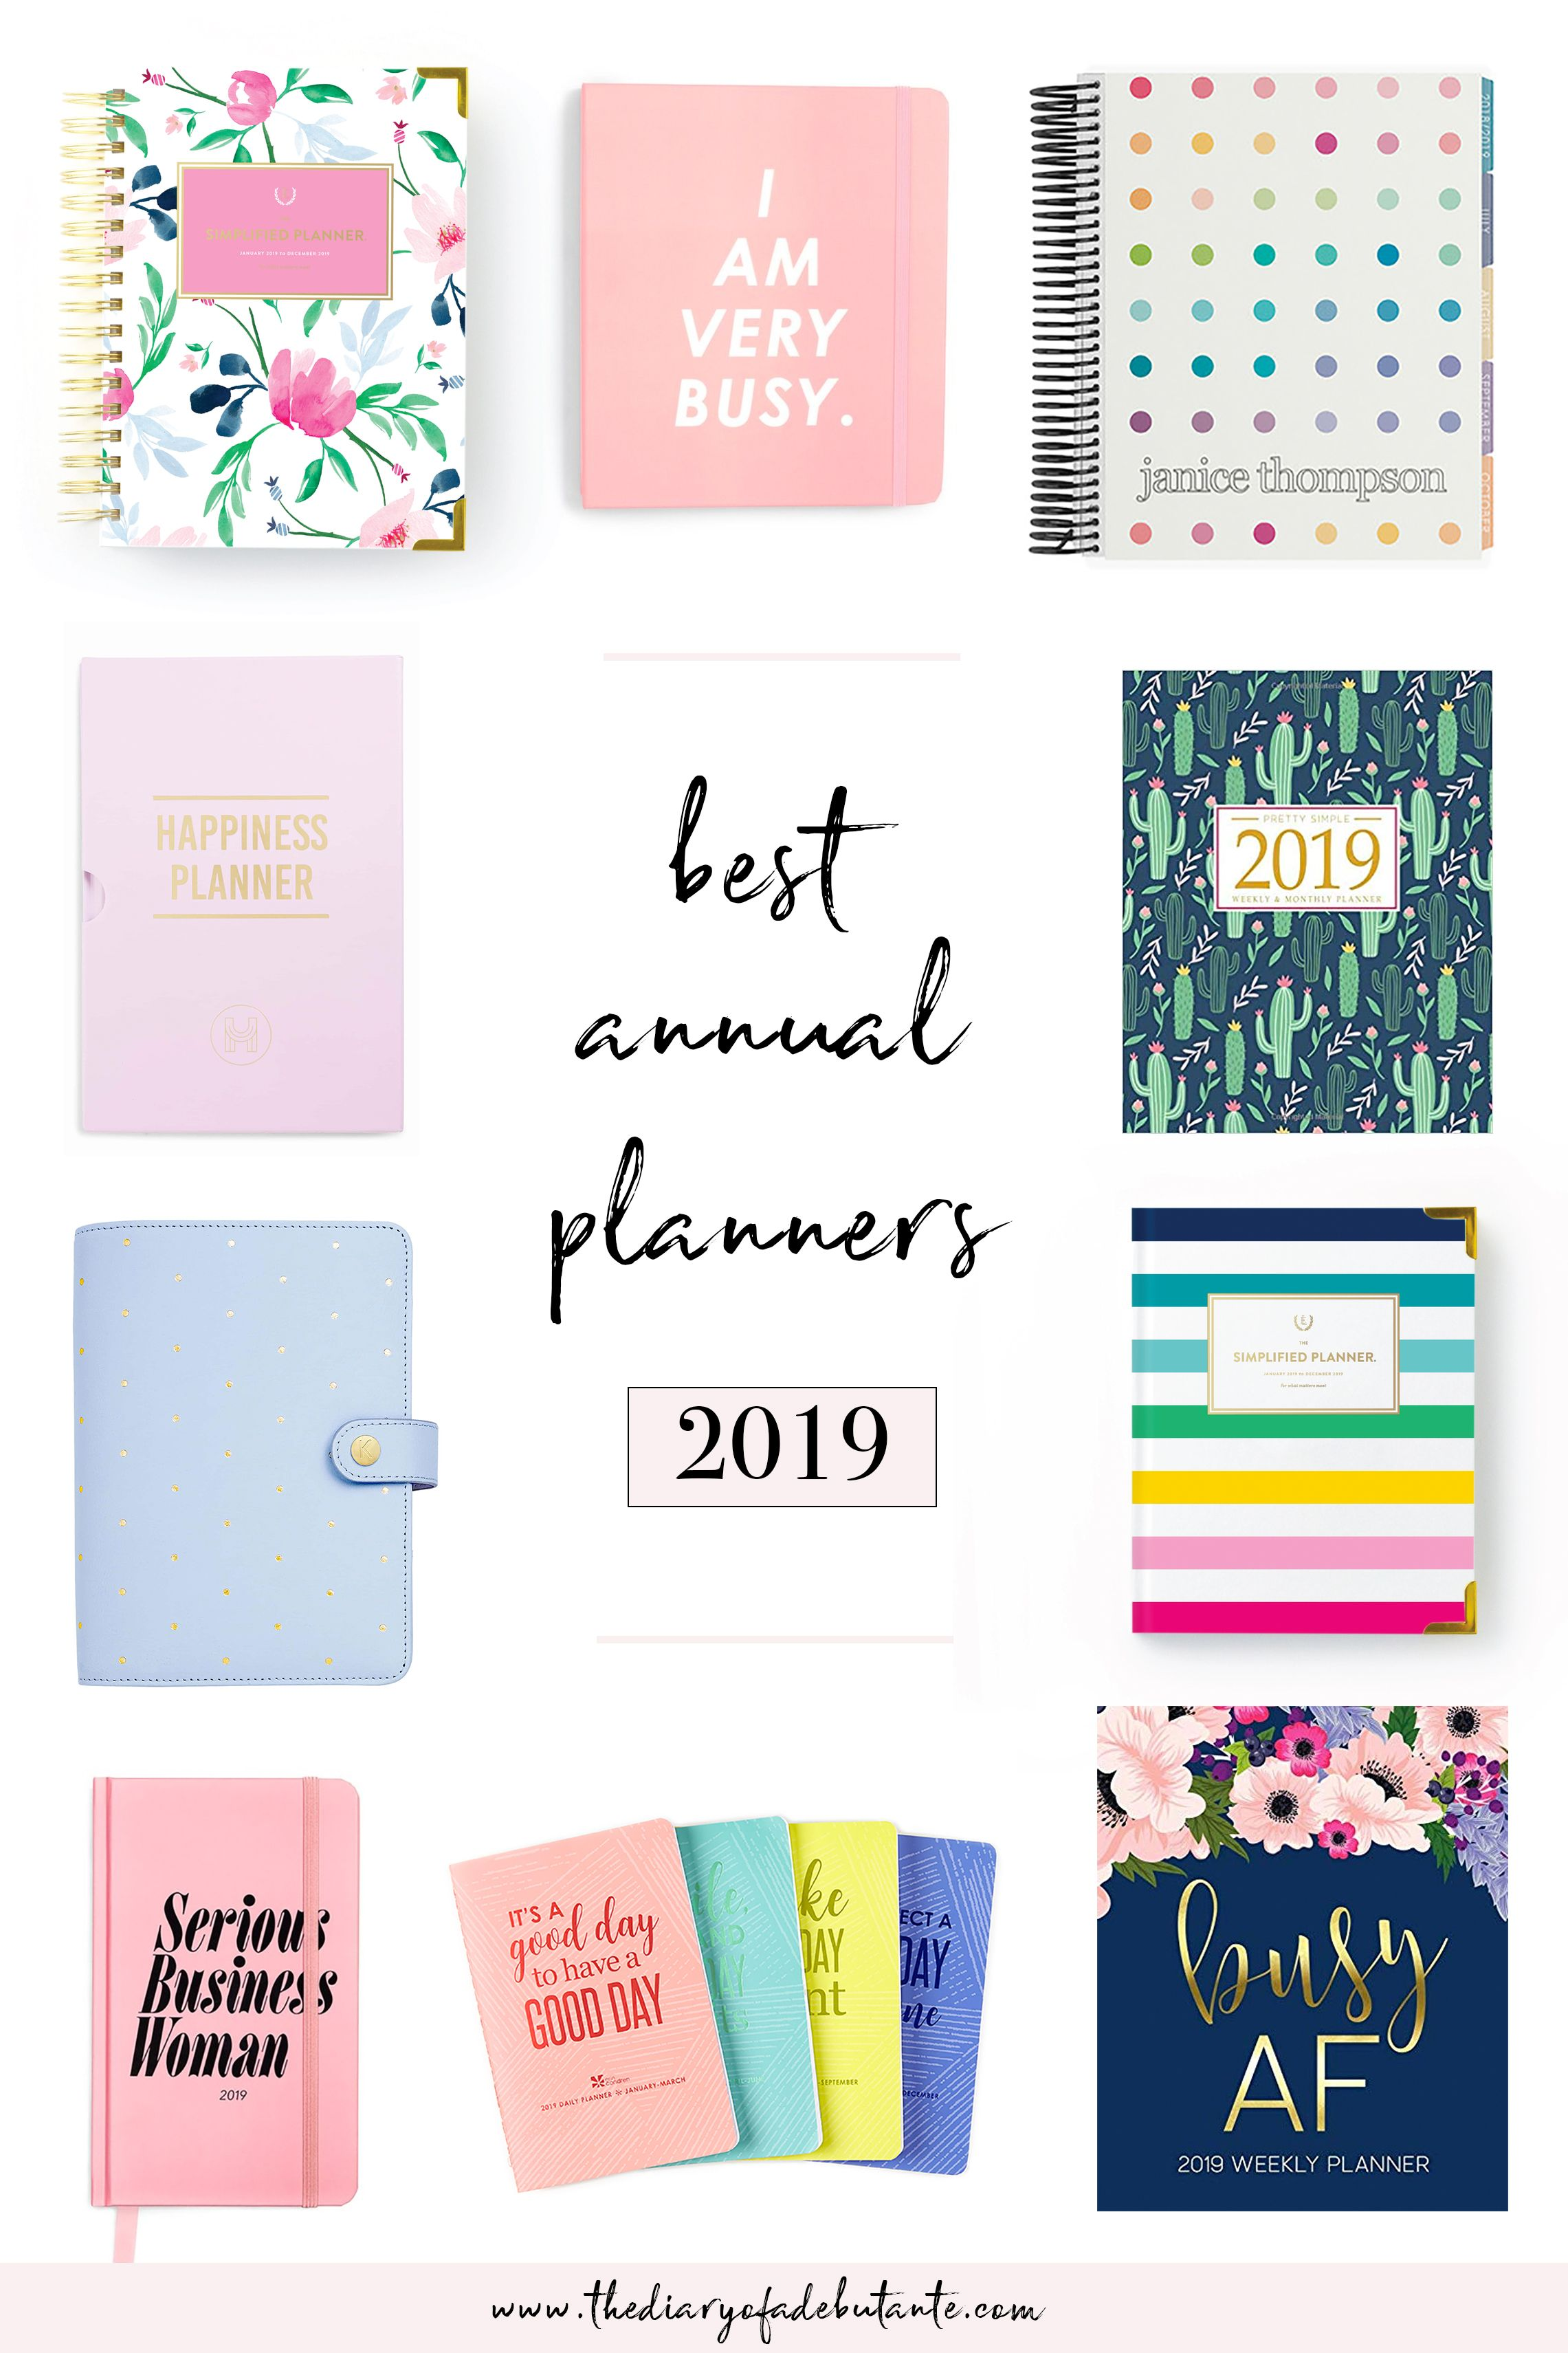 Best Planner 2019 Best Planners for Working Women: 2019 Annual Planner Round Up